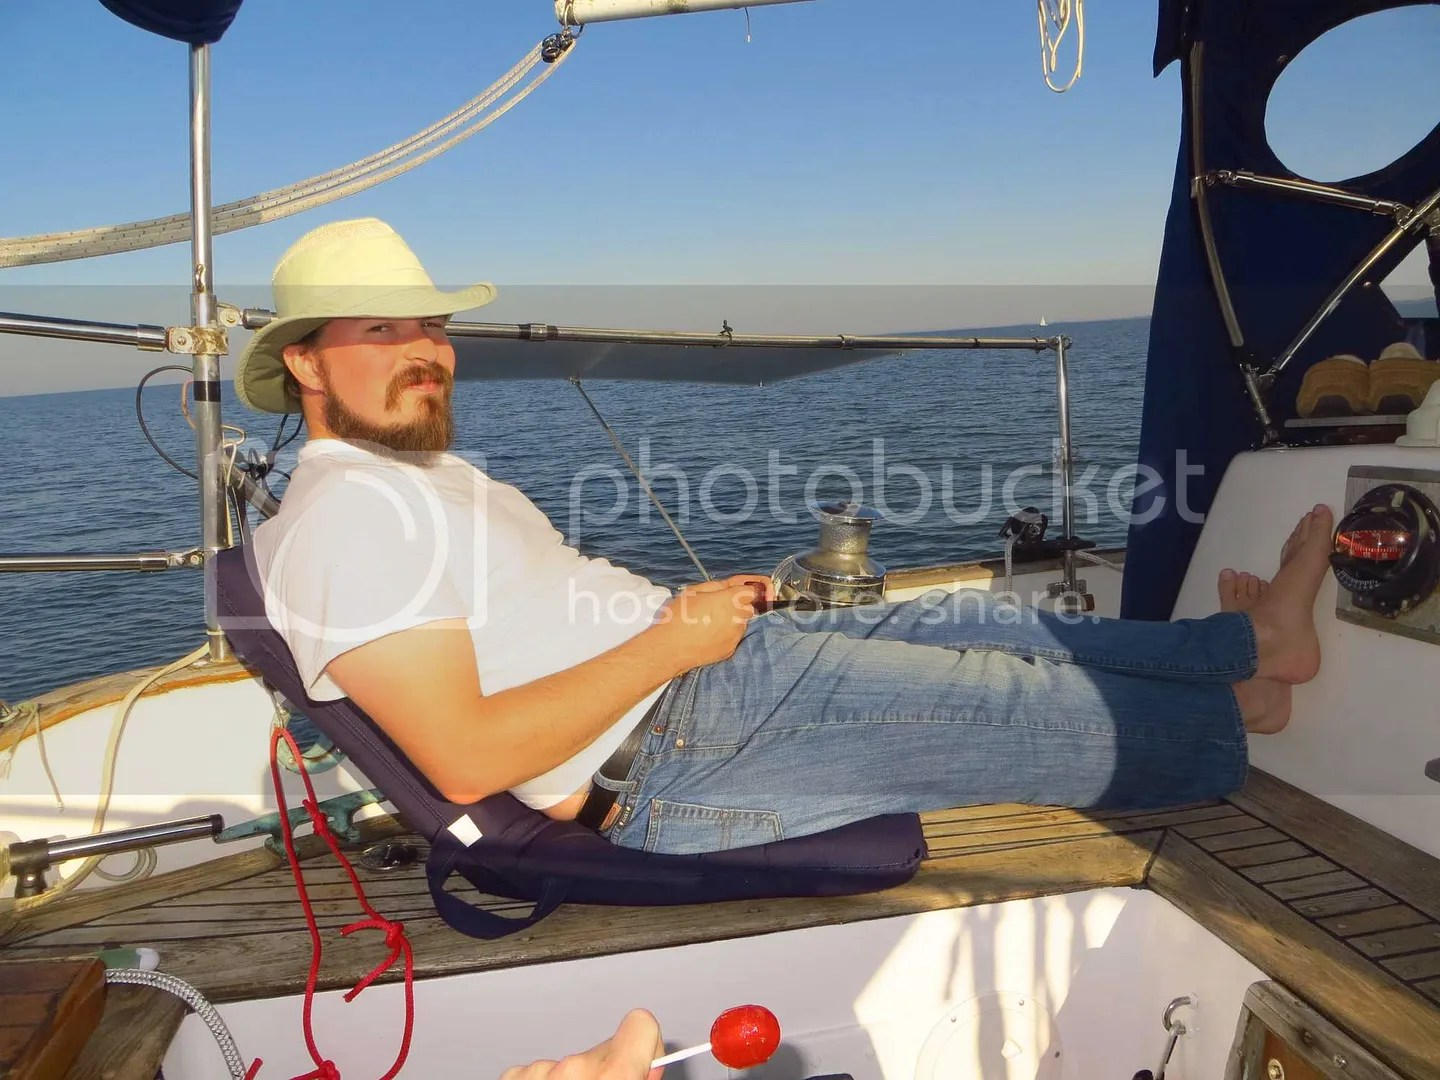 Tate relaxing during the sail